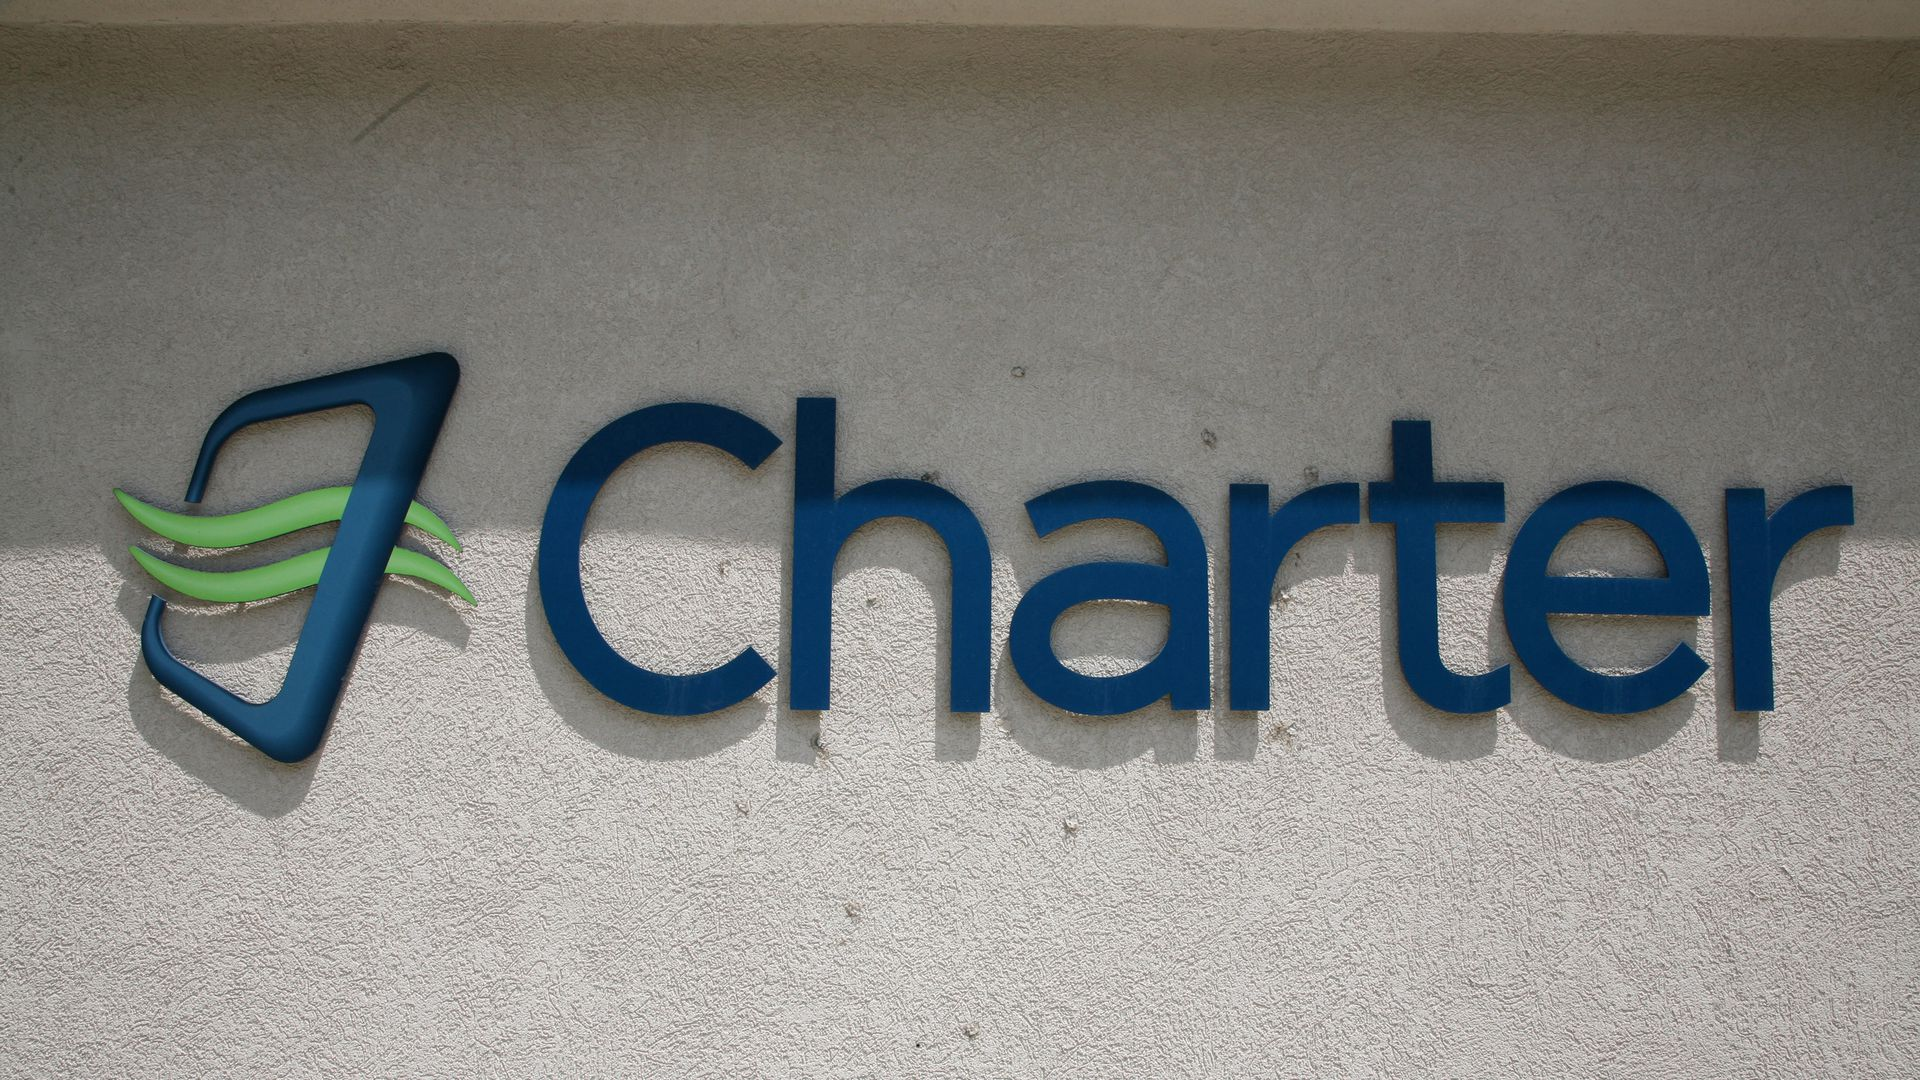 Telecom giant Charter agrees to record consumer fraud.